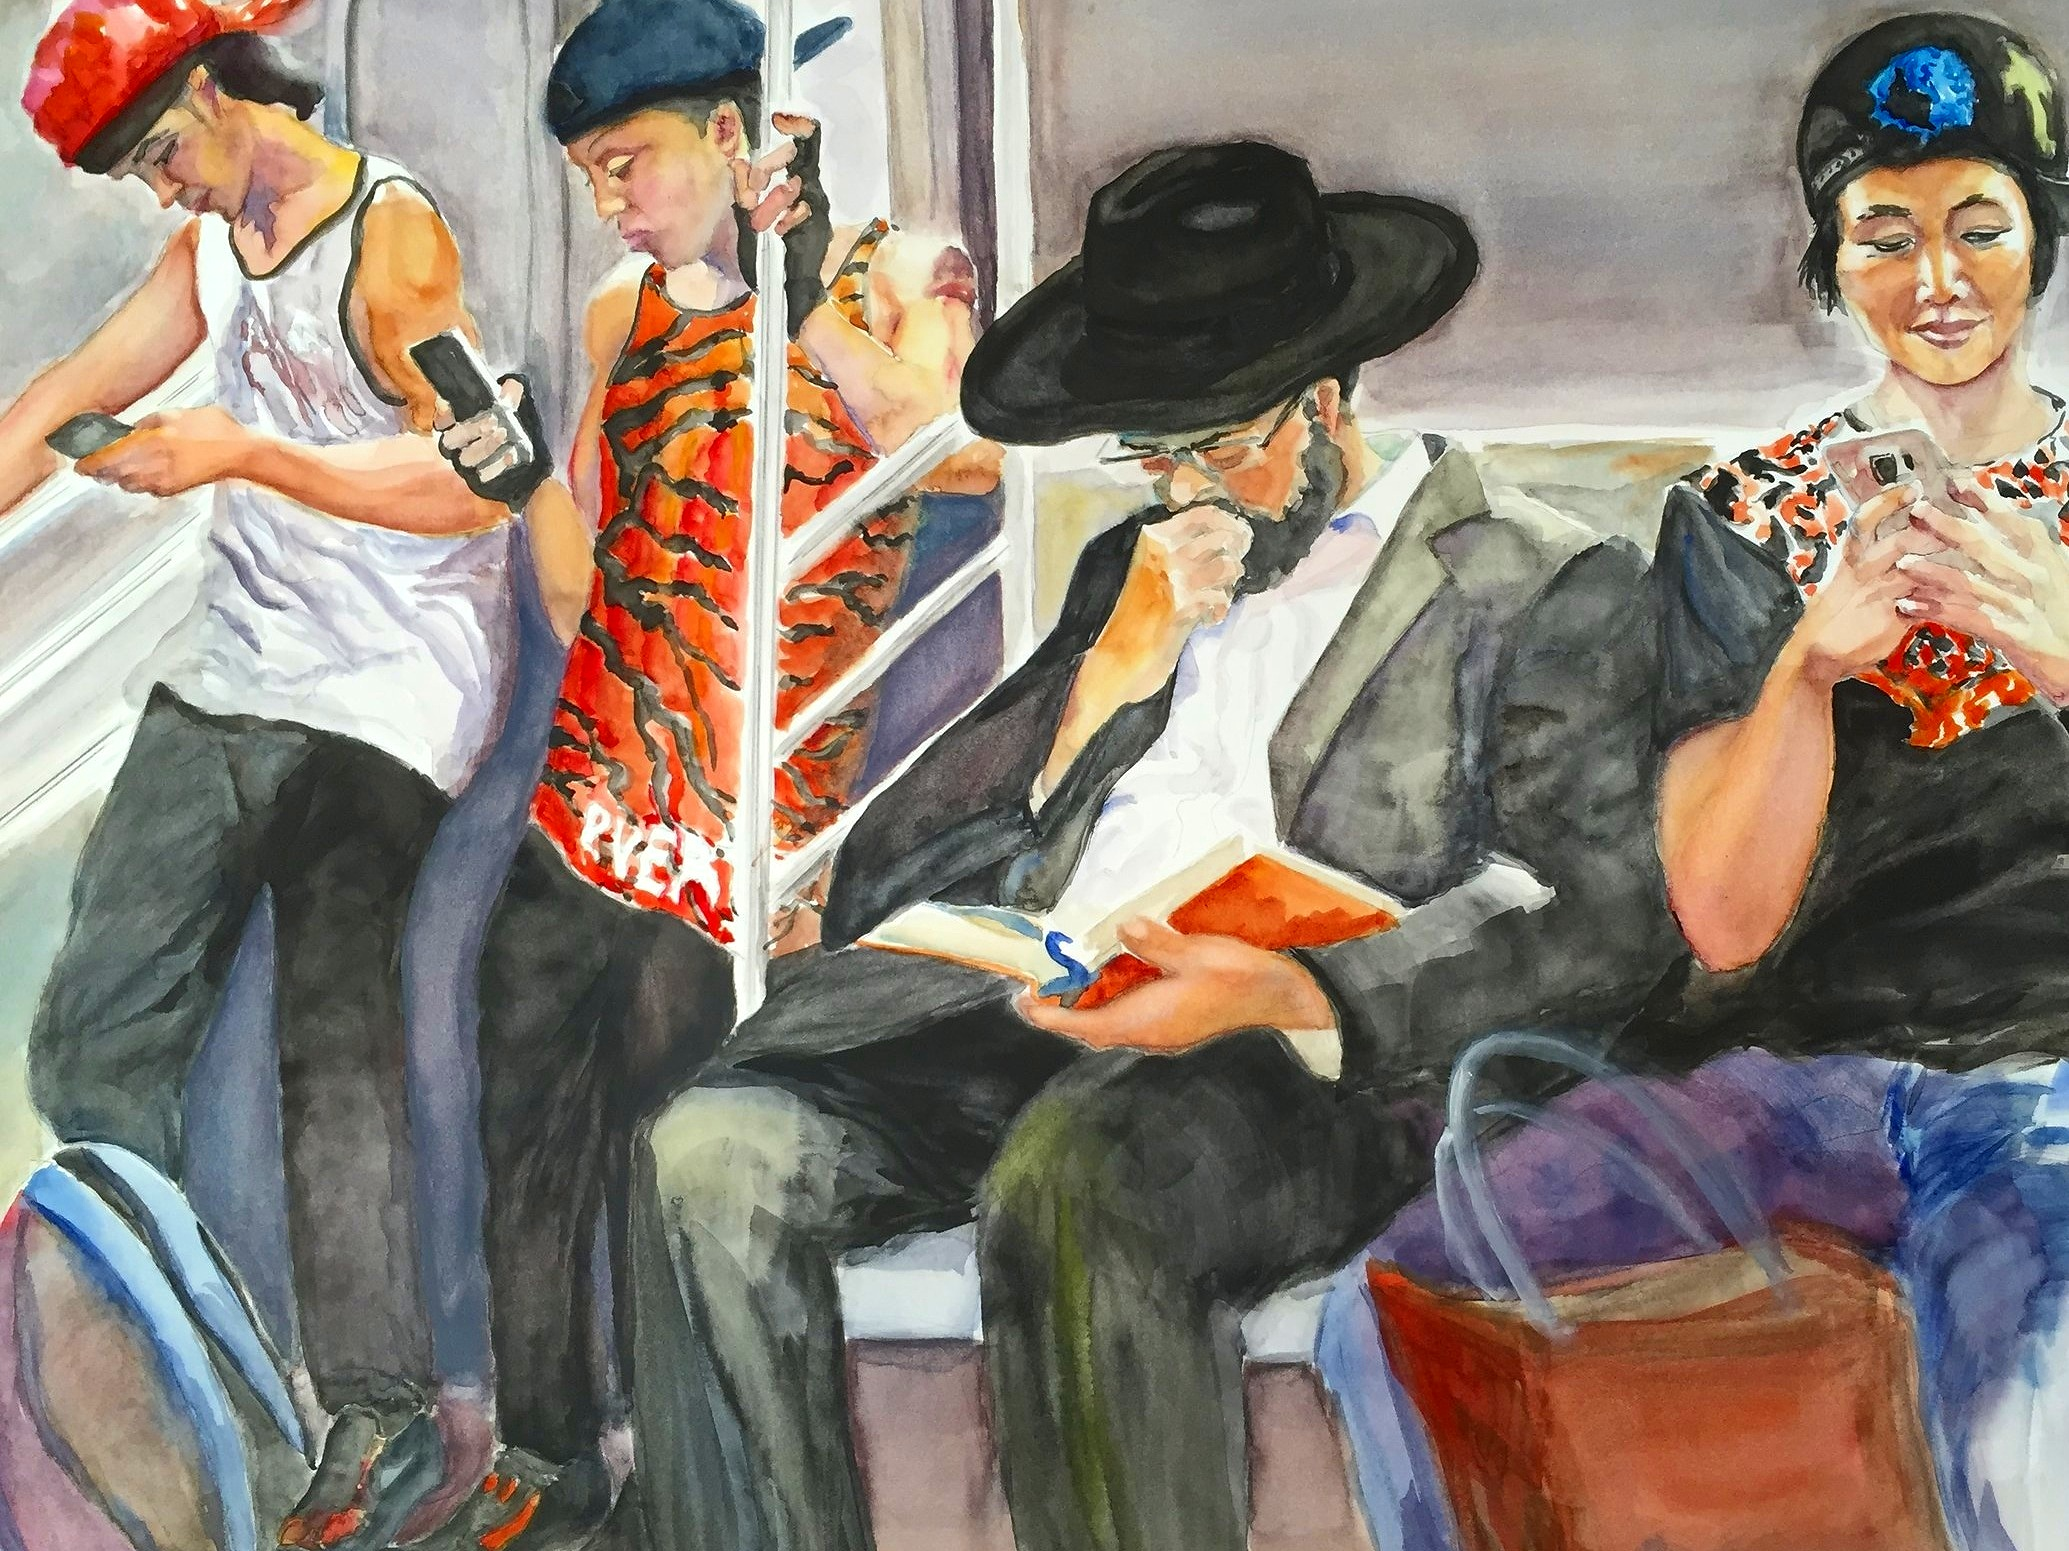 SUBWAY CHATTER (SOLD)